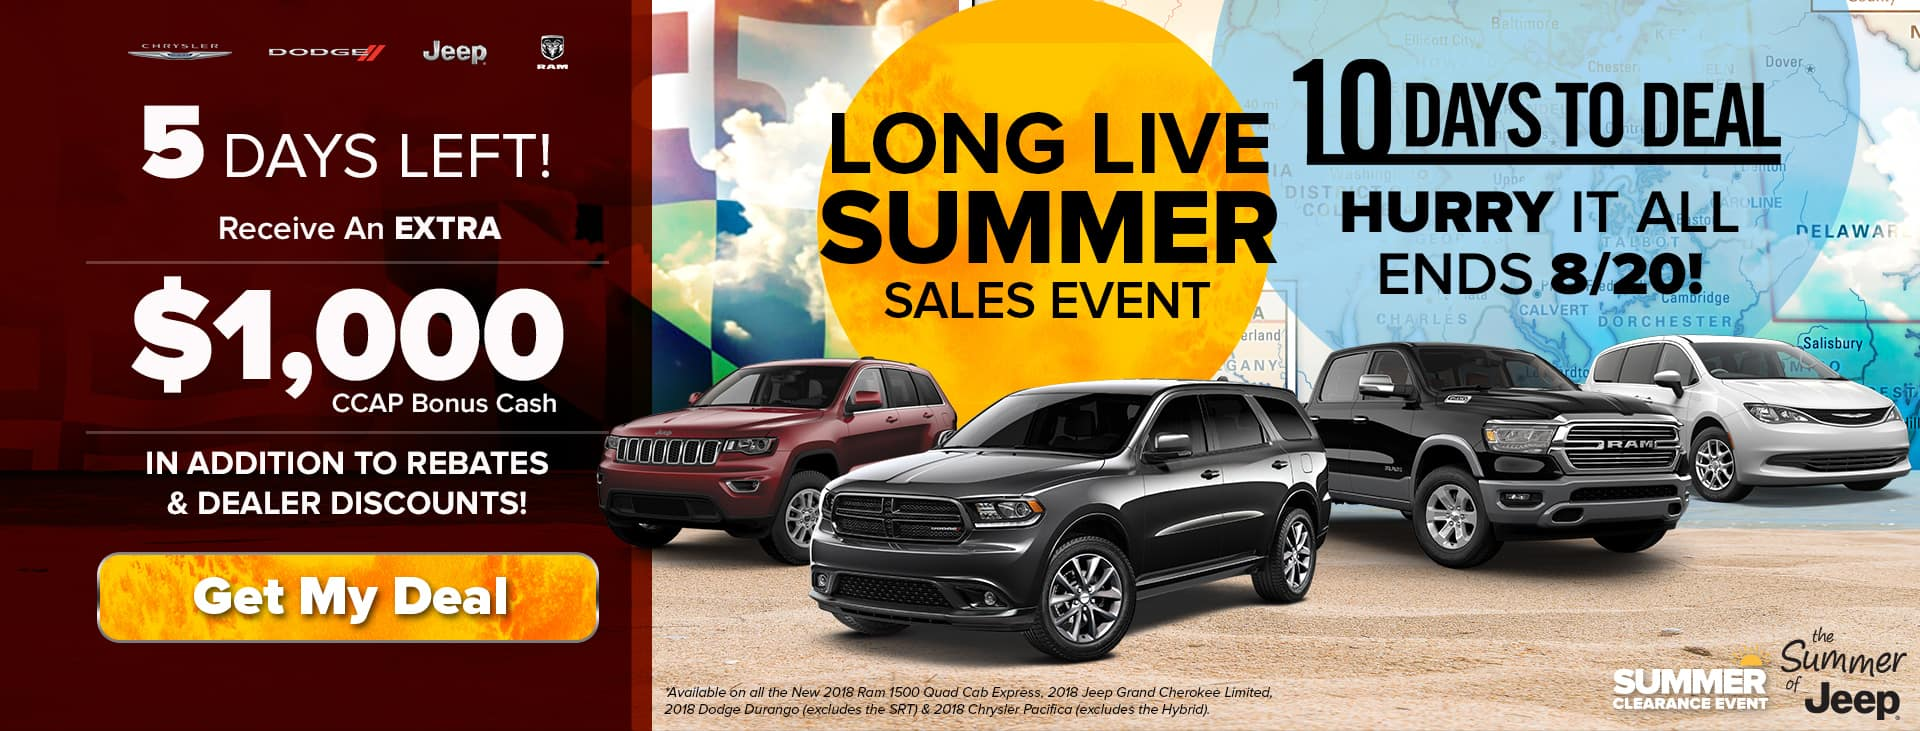 Hurry In! Only 5 Days Left to Deal!